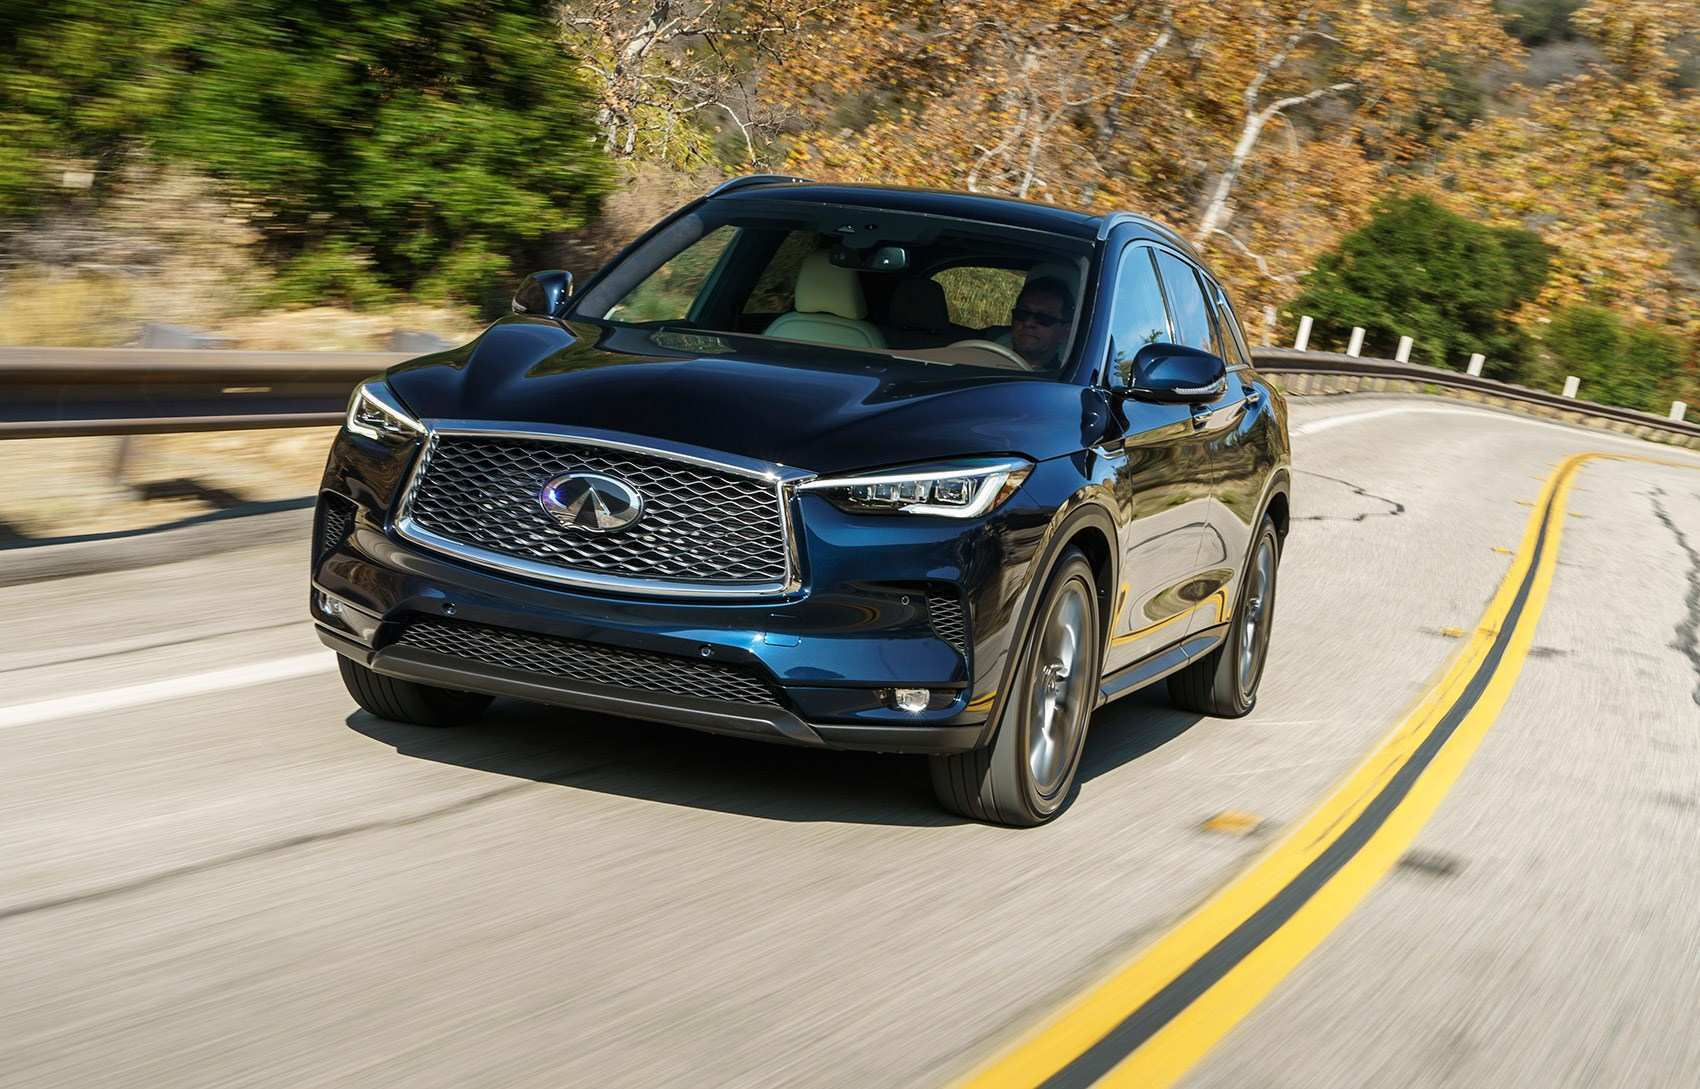 77 New The Infiniti Qx50 2019 Trunk Specs And Review Ratings with The Infiniti Qx50 2019 Trunk Specs And Review